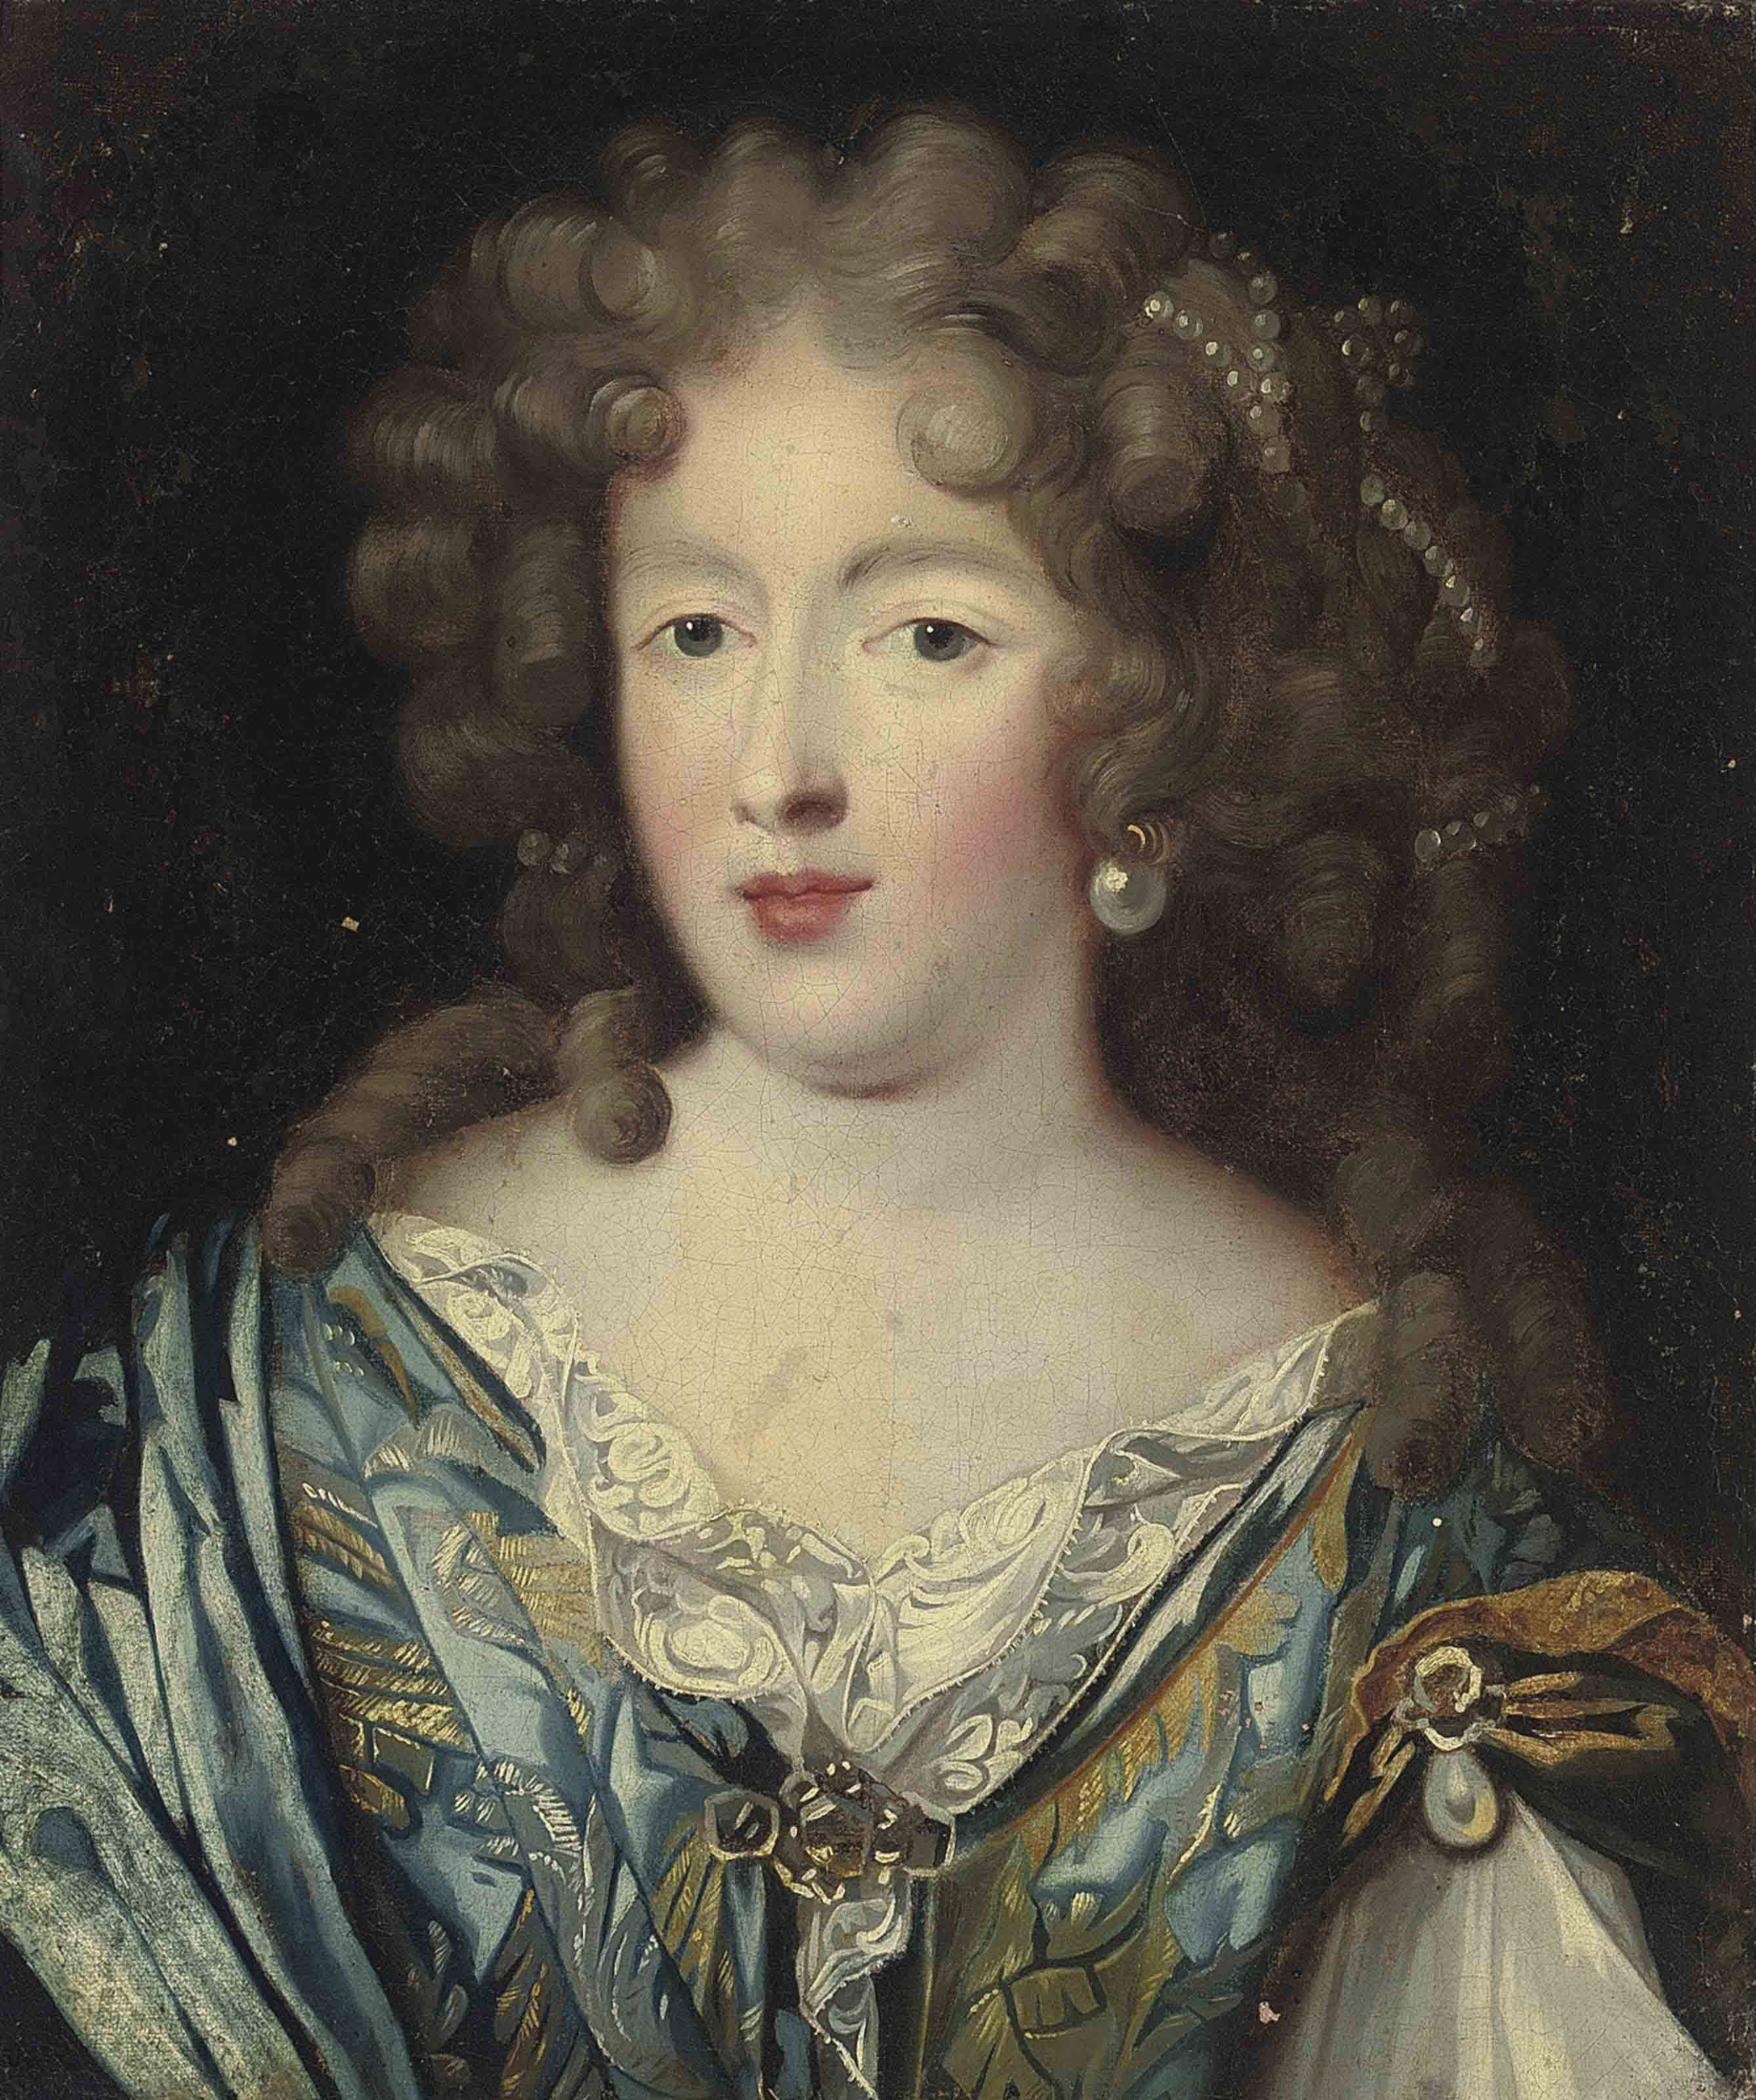 Portrait of a lady, bust-length, in a blue and gold dress, with pearl ornaments in her hair